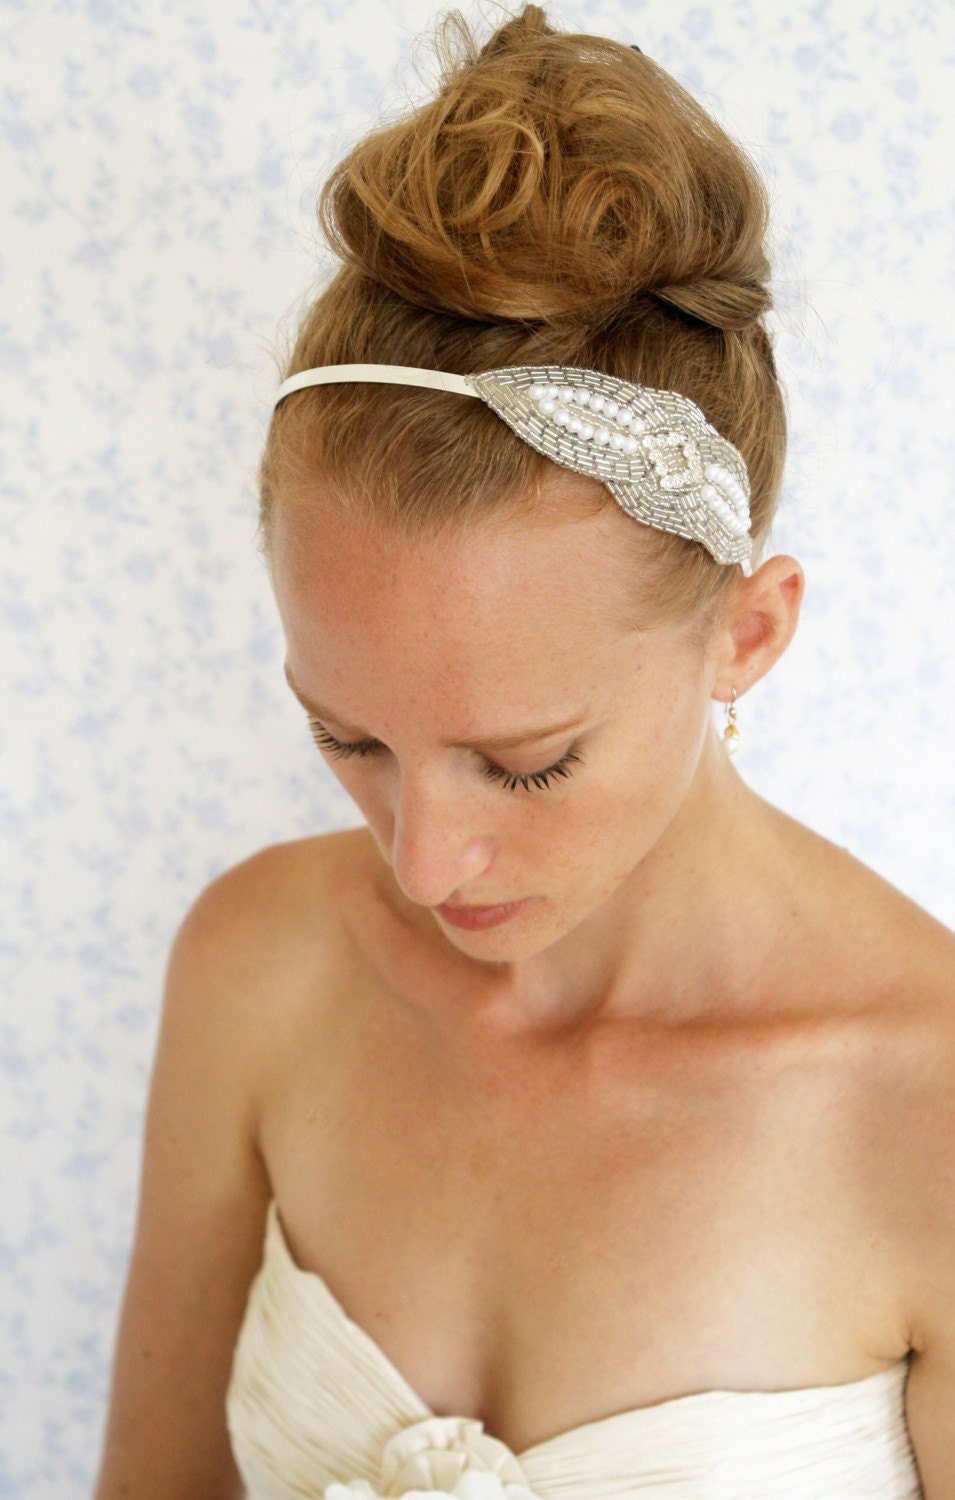 Silvery night headband